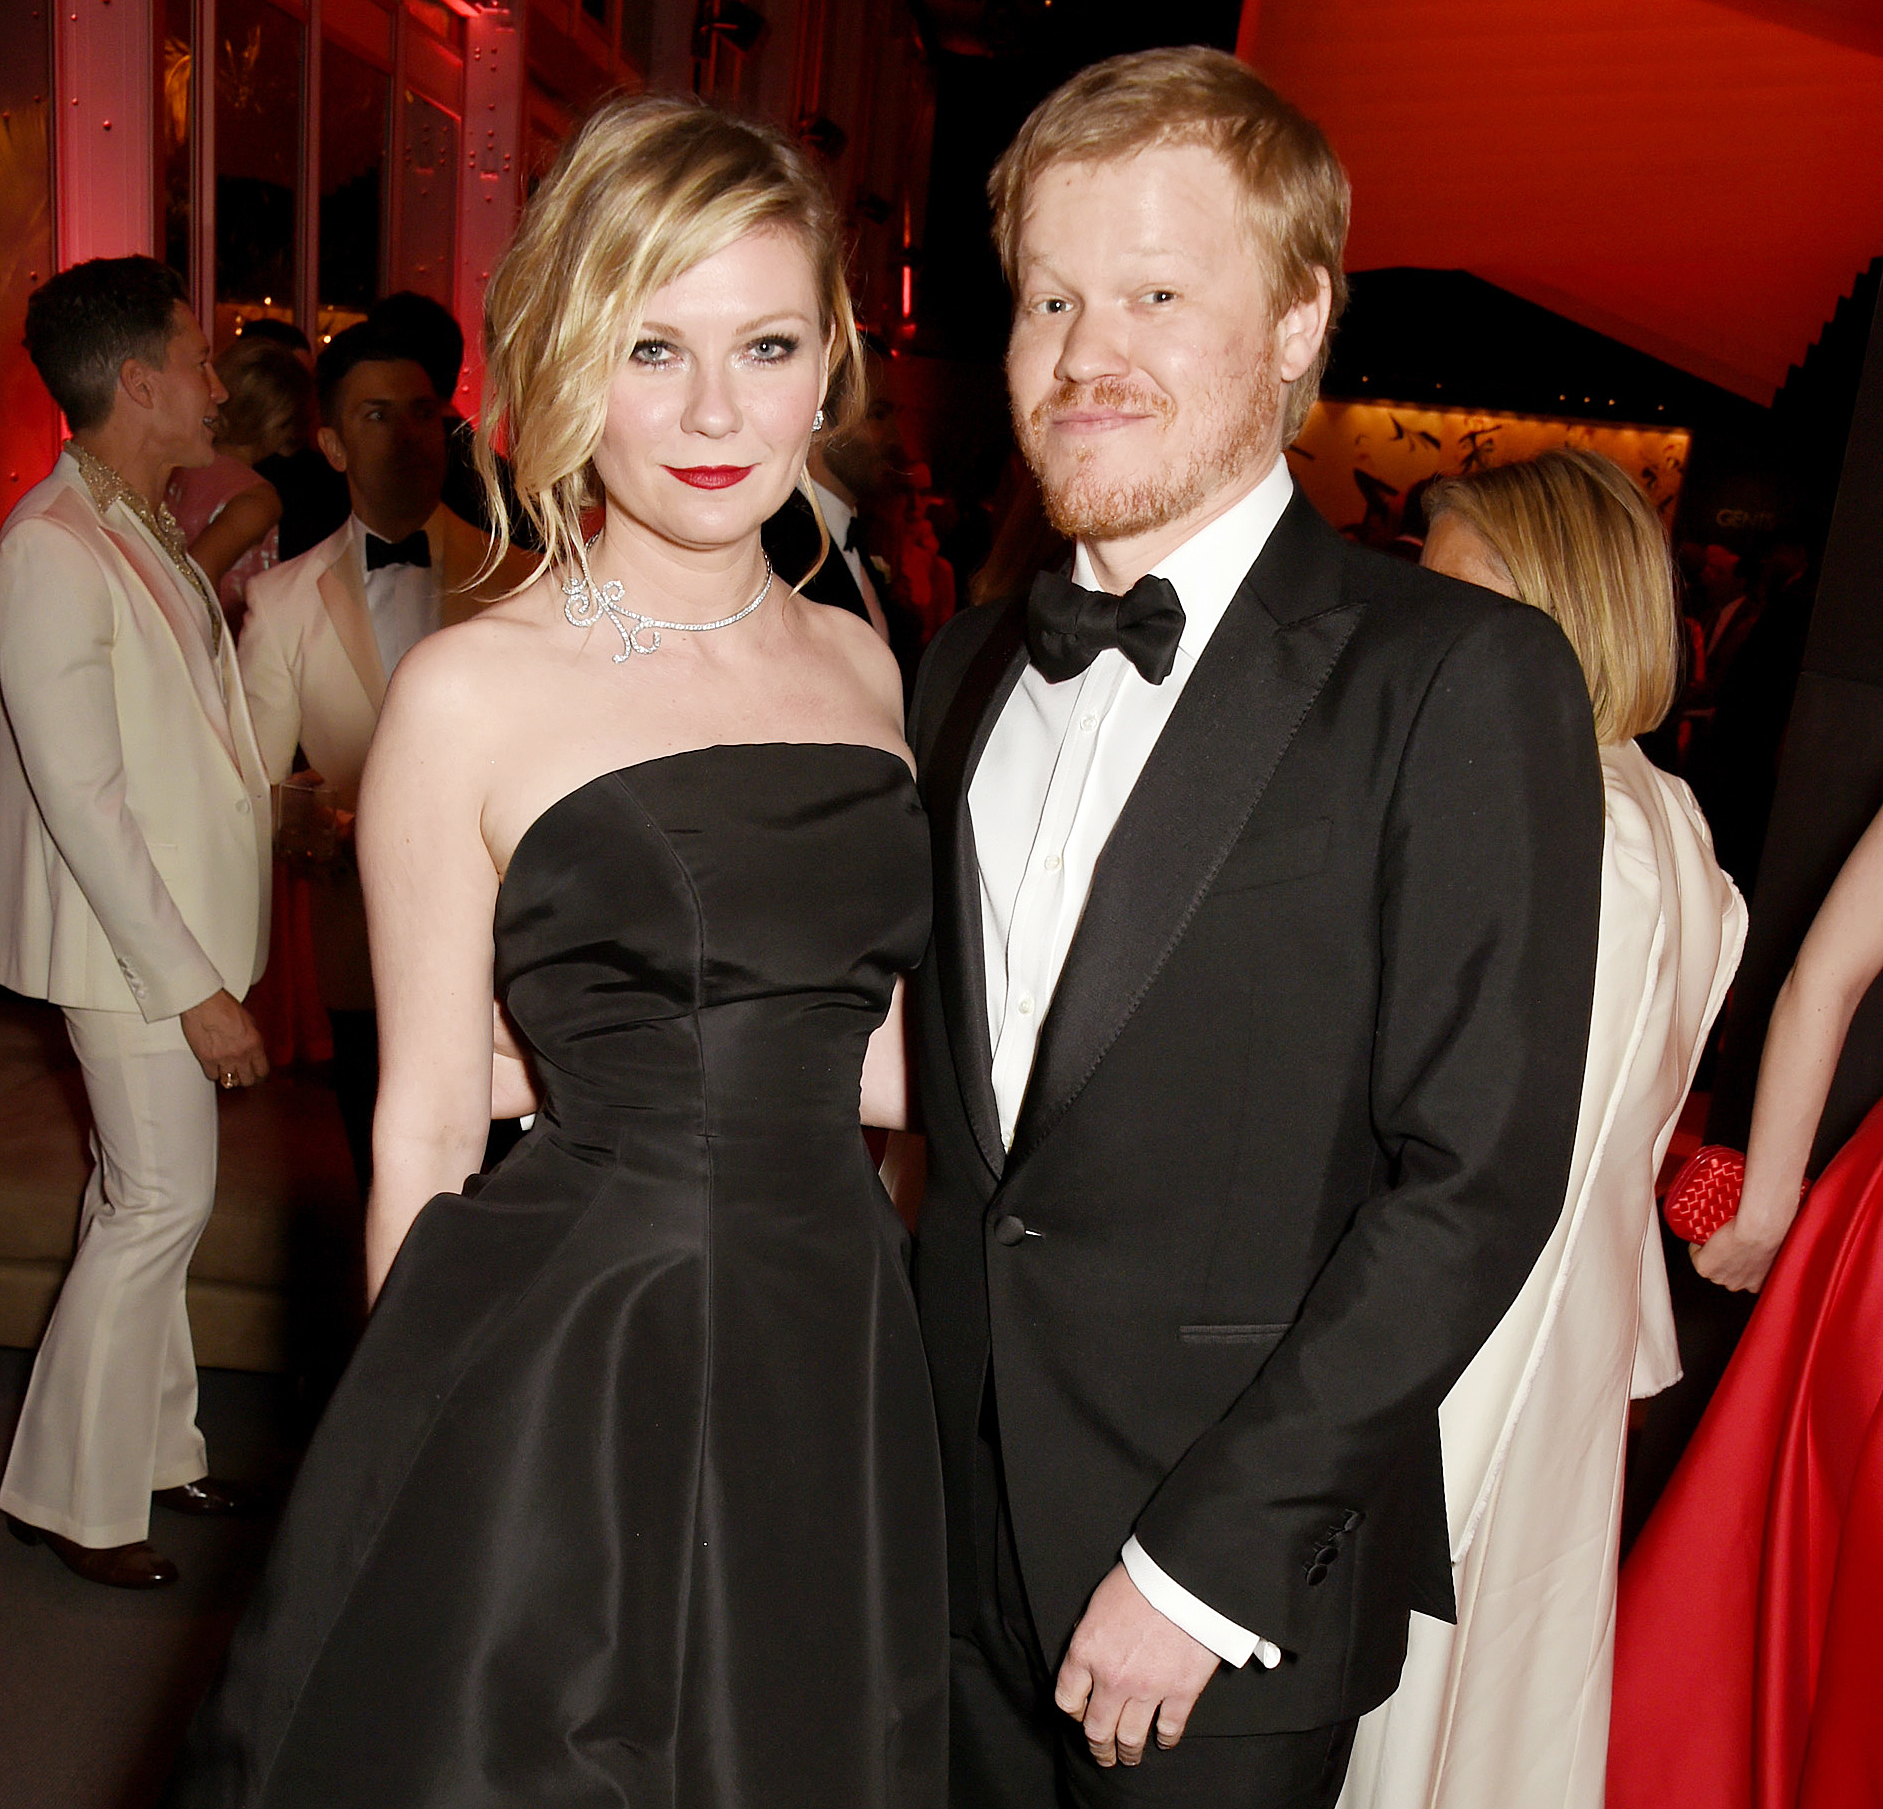 Kirsten Dunst 'pregnant with first baby' after getting engaged to Jesse Plemons